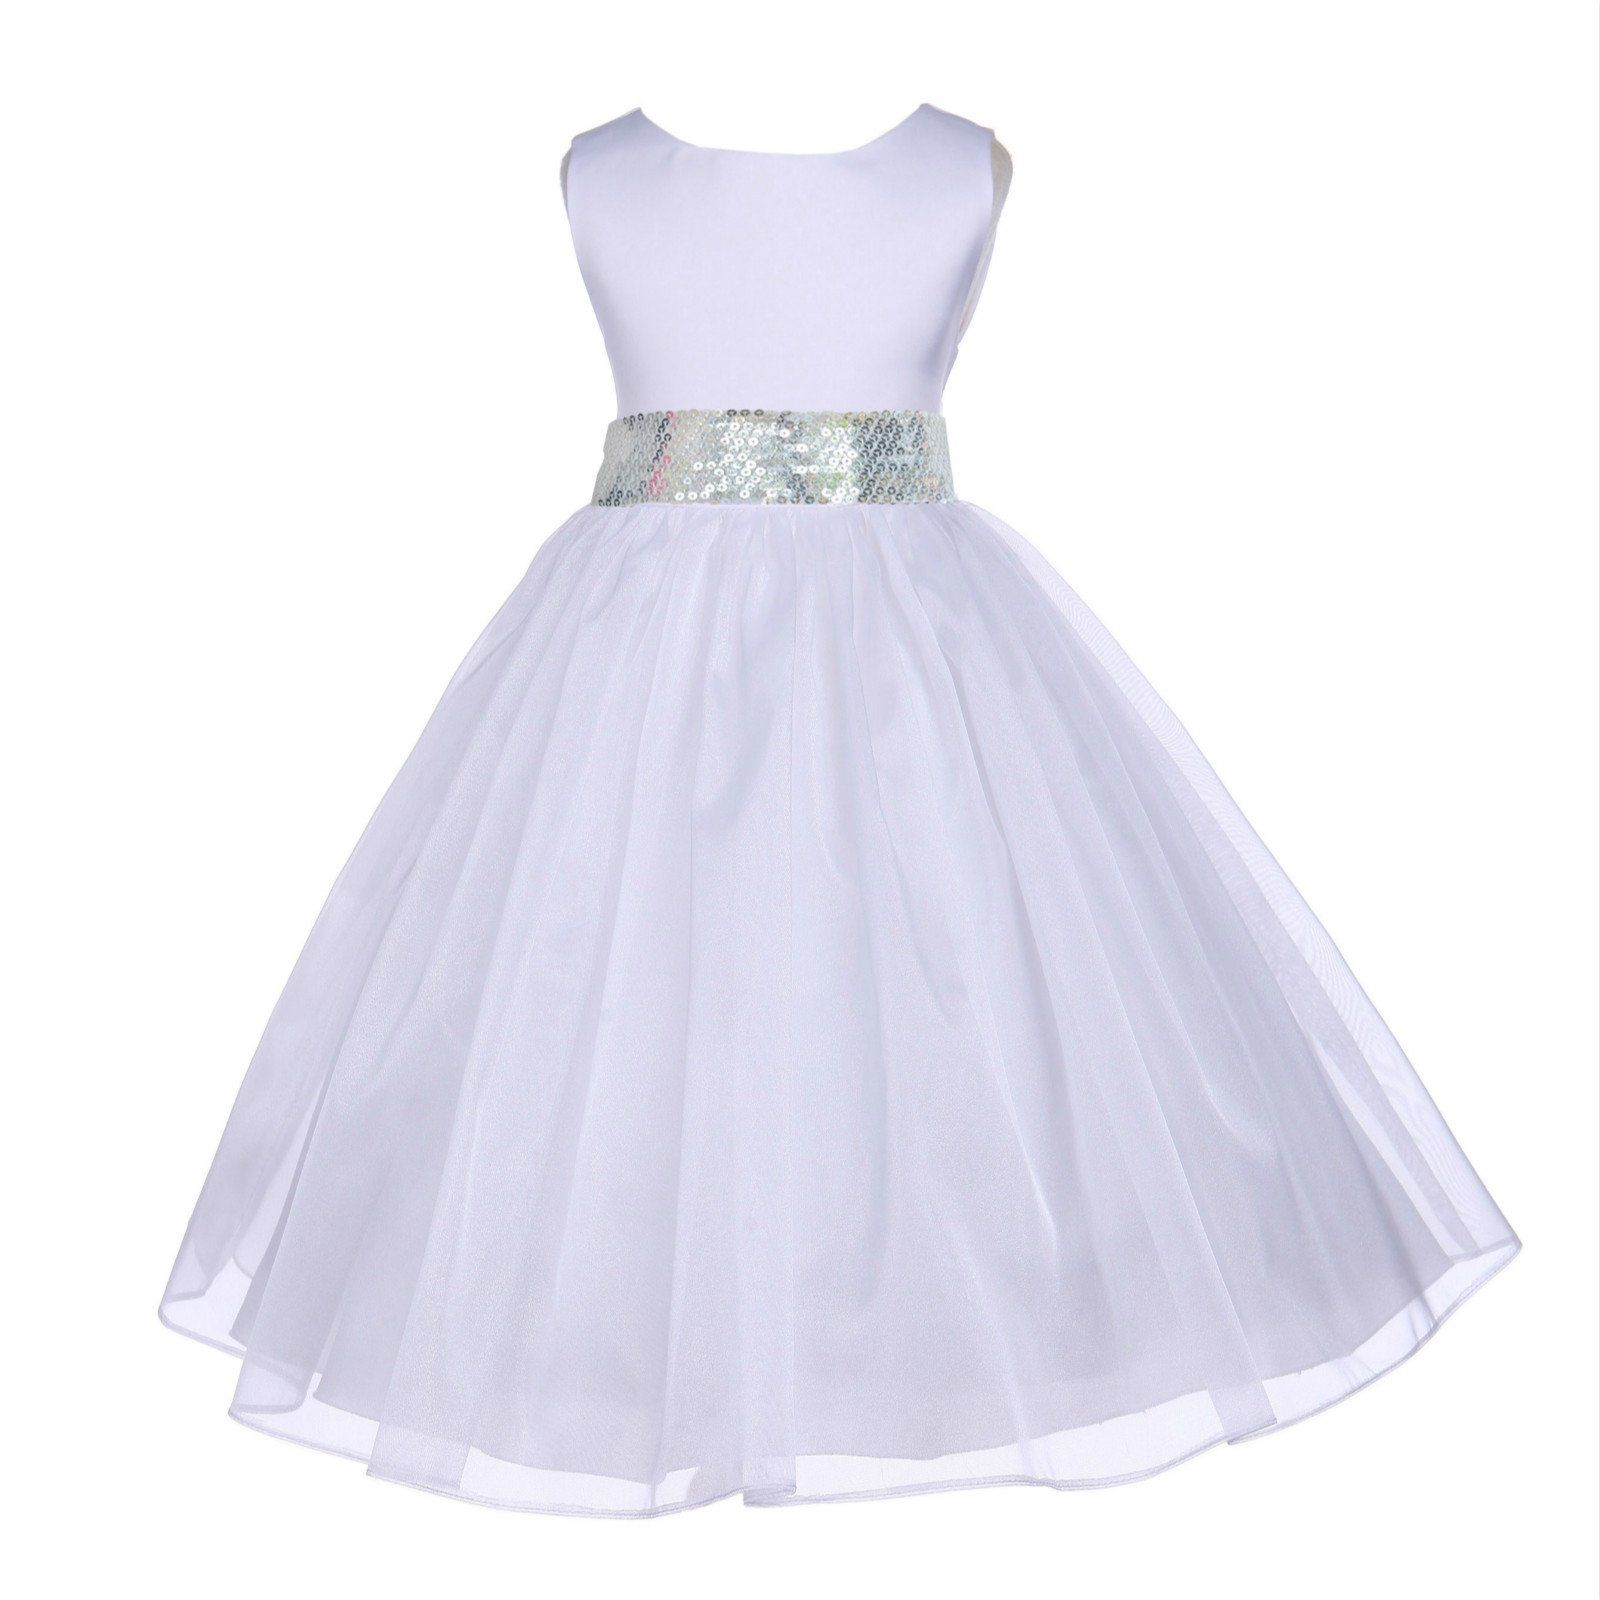 463c95ee7e6 White Organza Sequin Sash Flower Girl Dress Receptions Bridal Beauty  Pageant Special Occasions 841mh